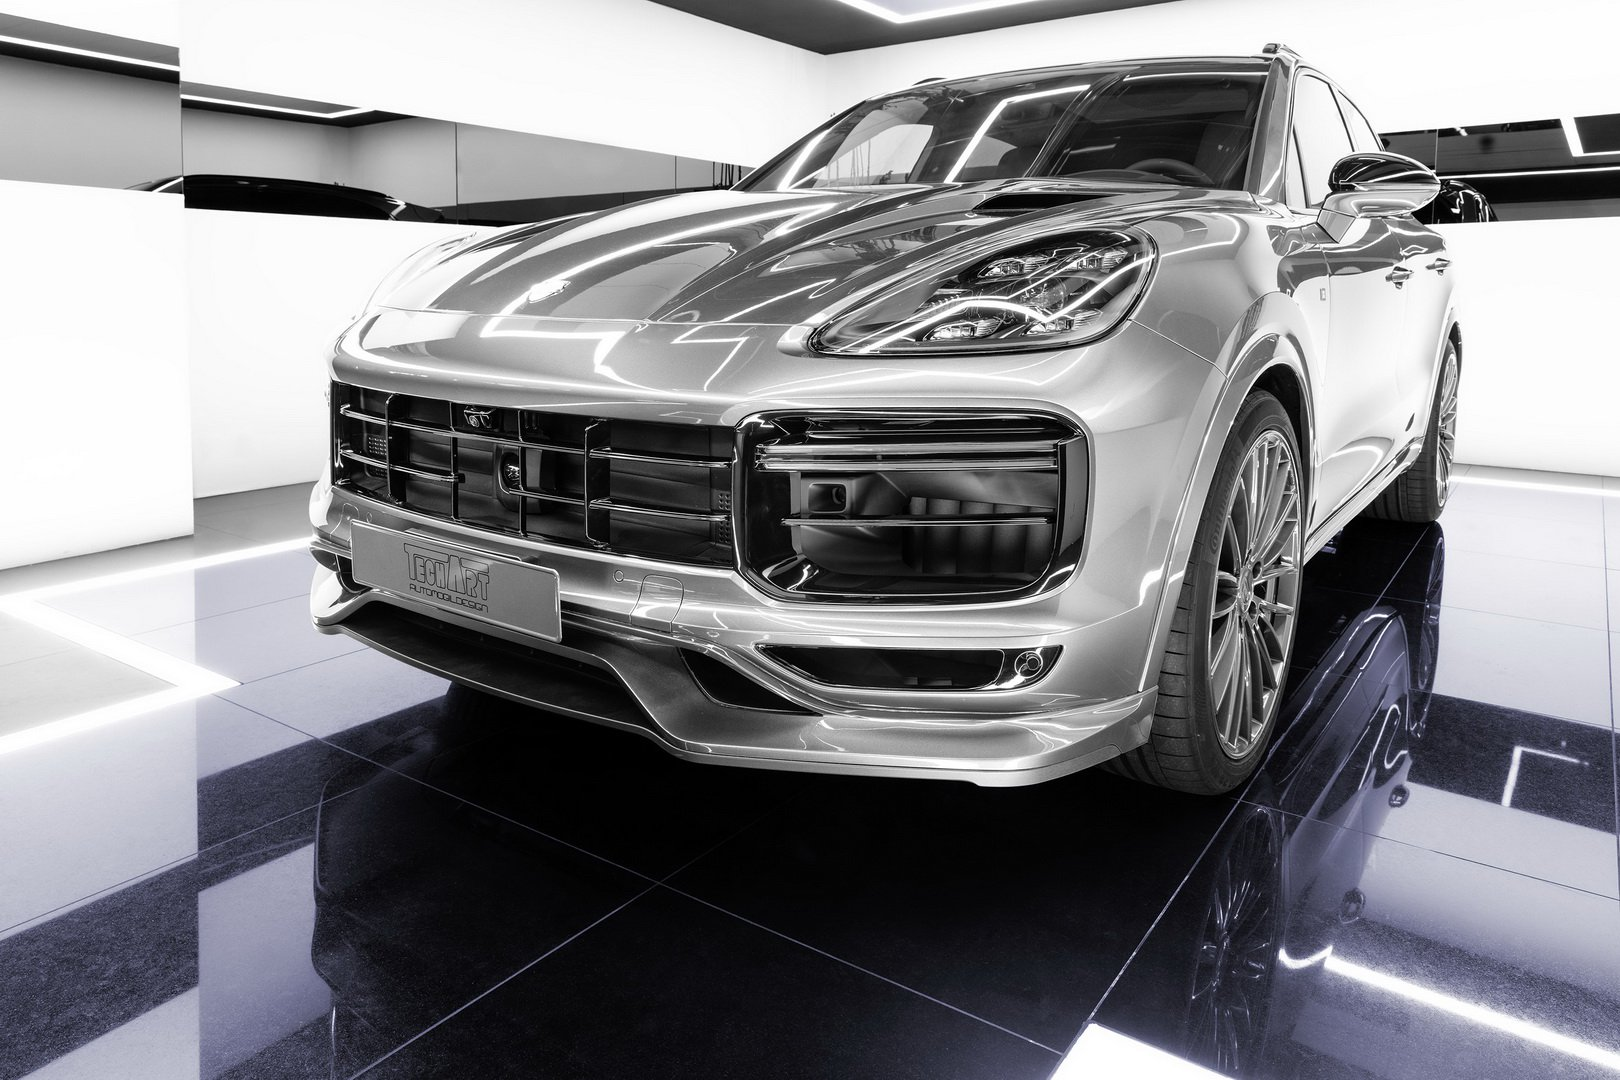 Porsche-Cayenne-tuned-by-TechArt-6